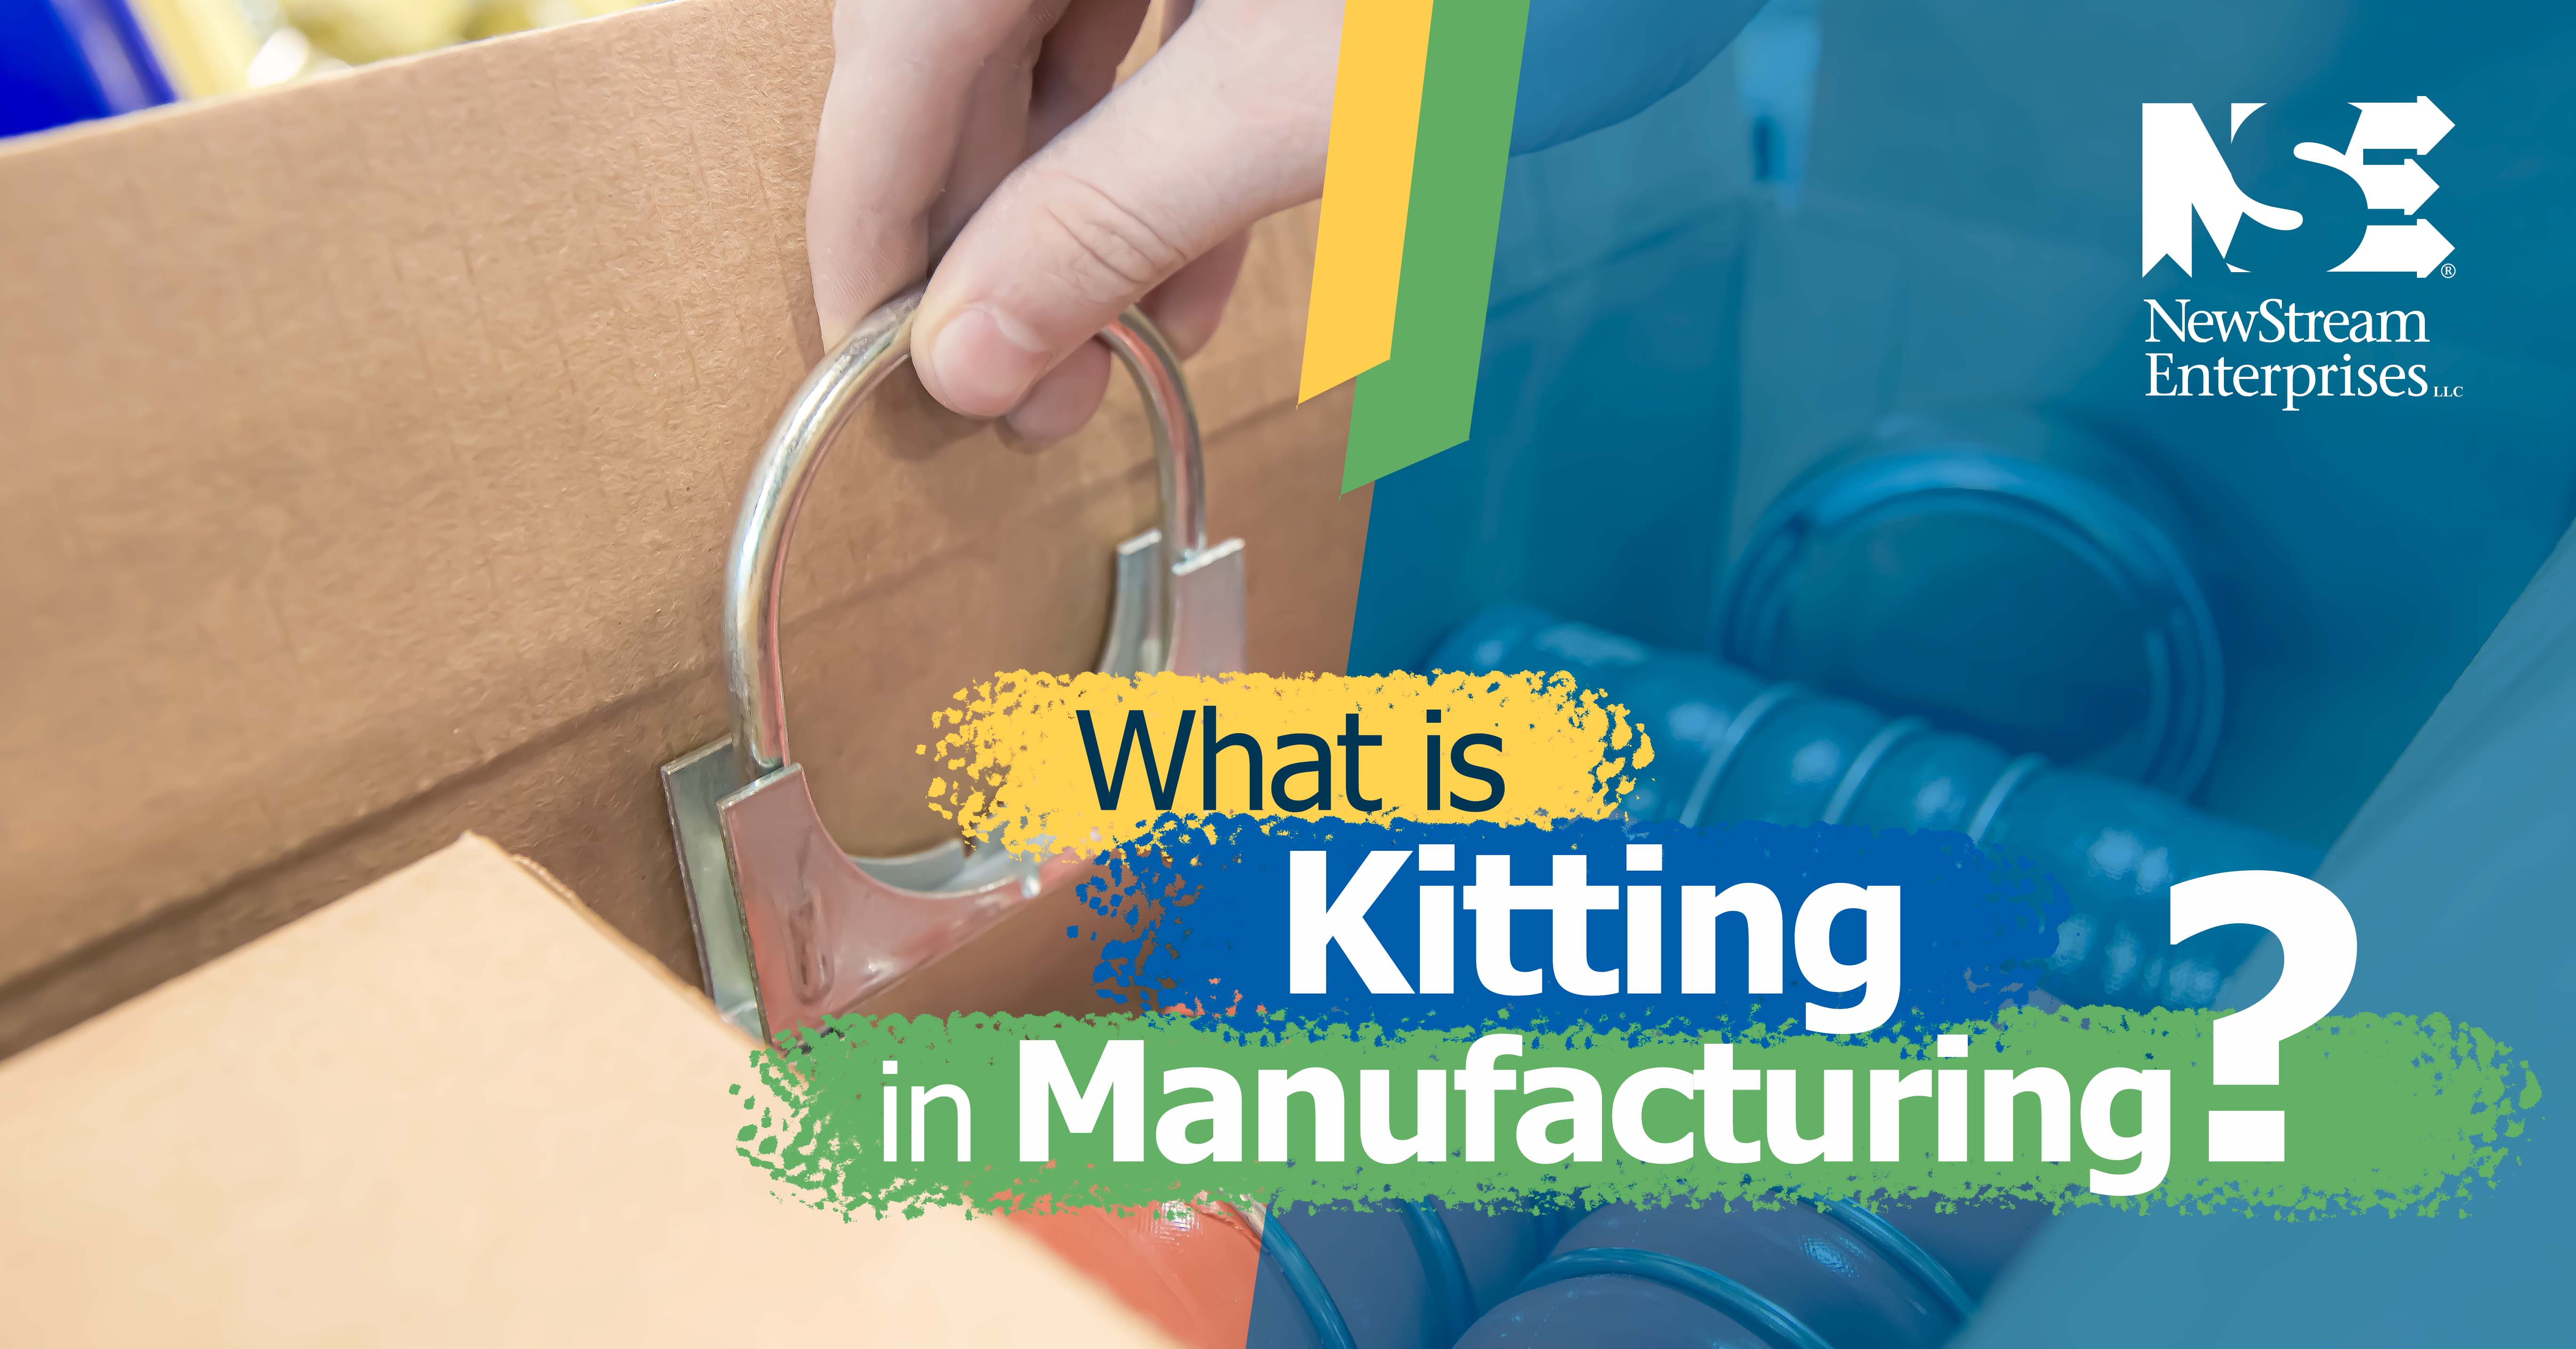 What is Kitting in Manufacturing? - NewStream Enterprises